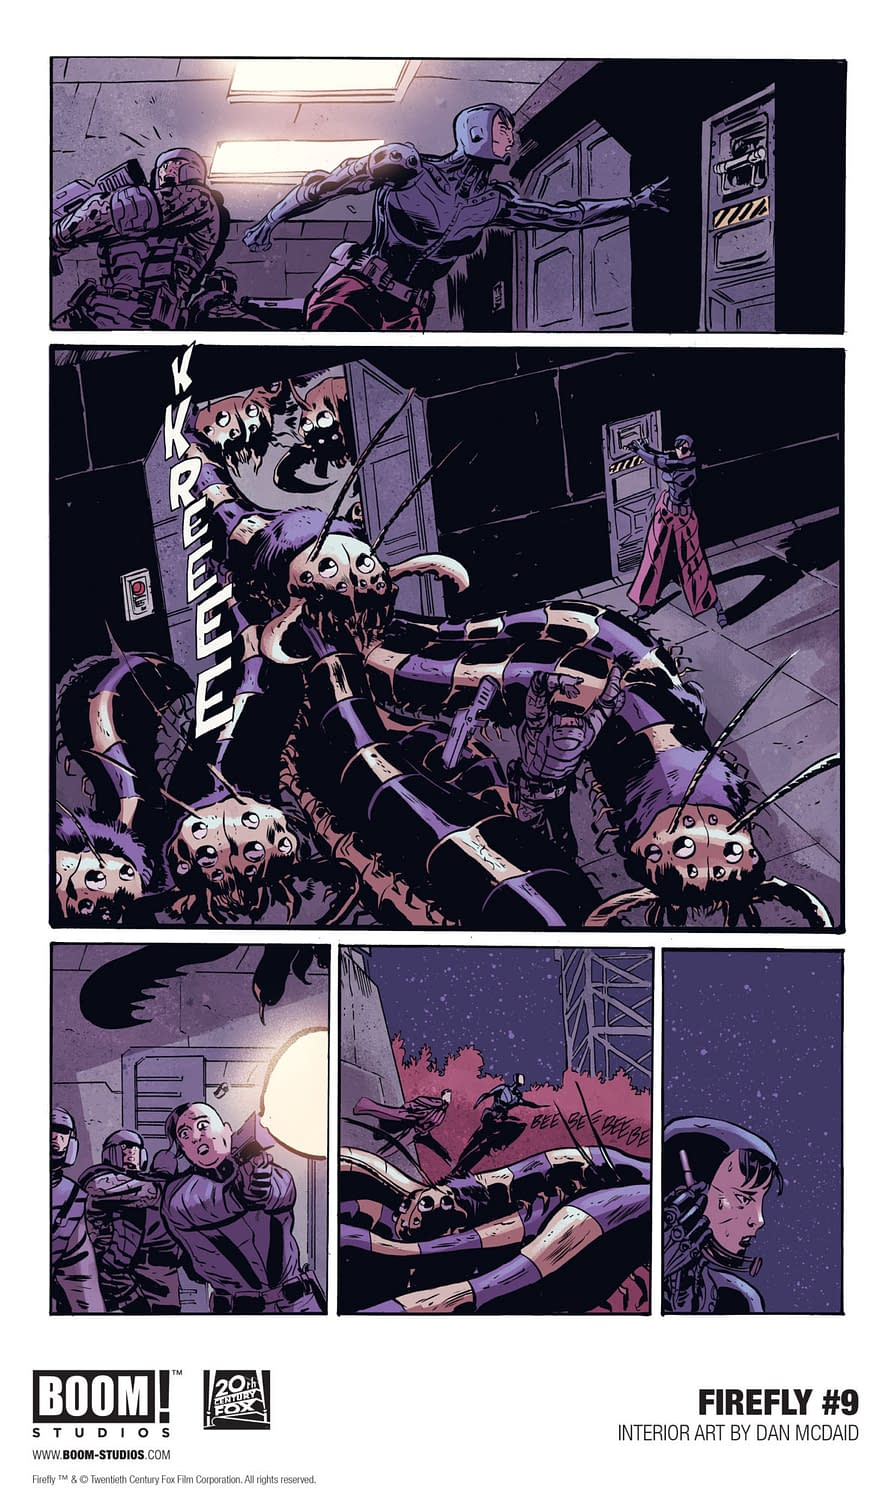 5 Pages From September's Firefly #9